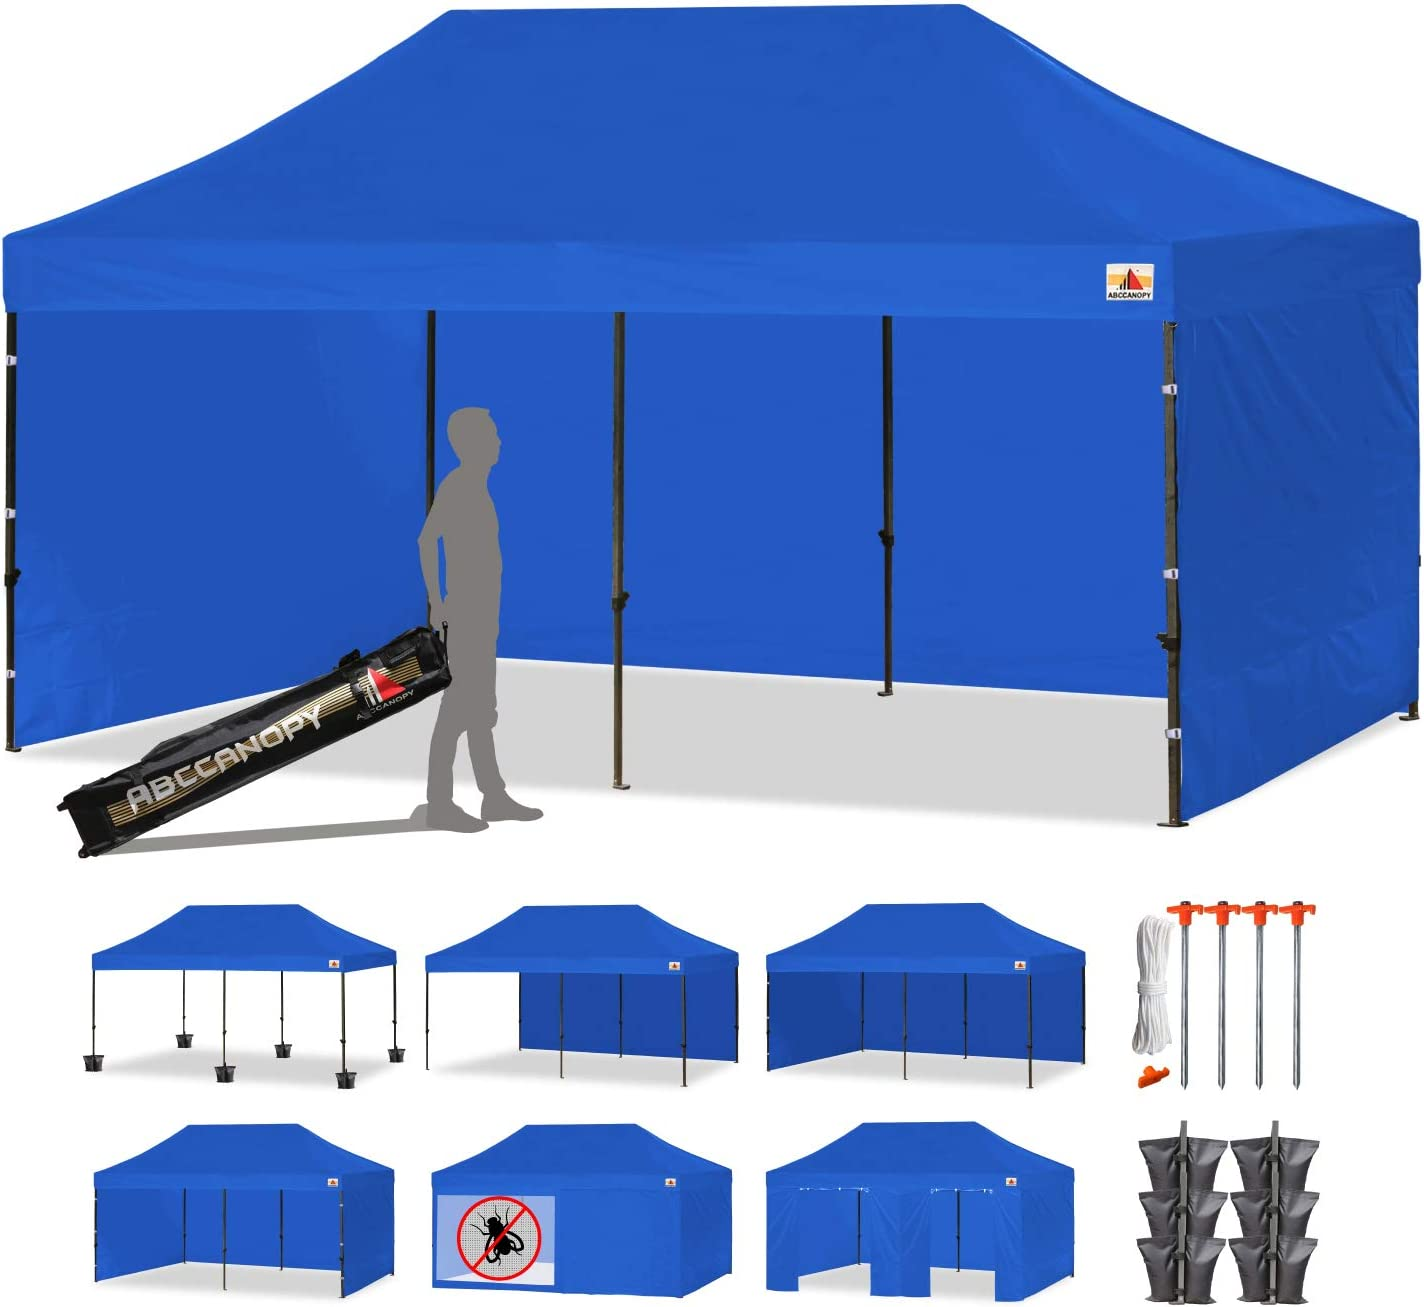 ABCCANOPY Deluxe 10 X 20 Pop up Canopy Tent Commercial Instant Gazebos with 9 Removable Walls and Roller Bag and 6 Weight Bags Blue